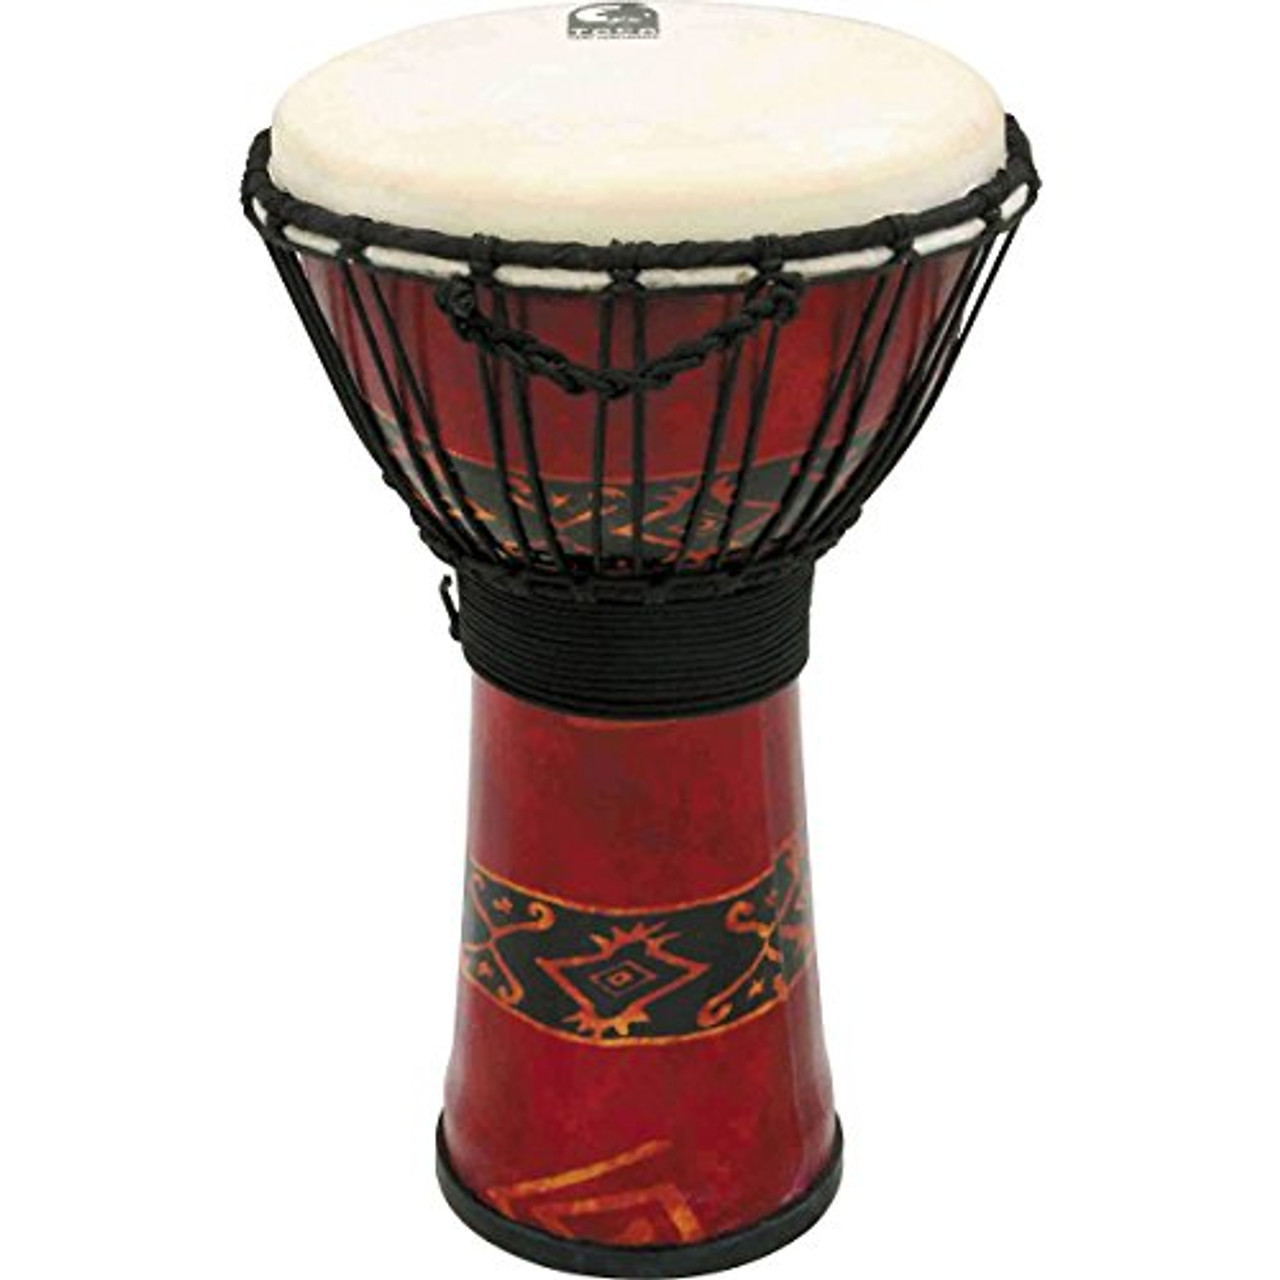 Toca a SFDJ-10RP Freestyle Rope Tuned 10-Inch Djembe - Bali Red Finish